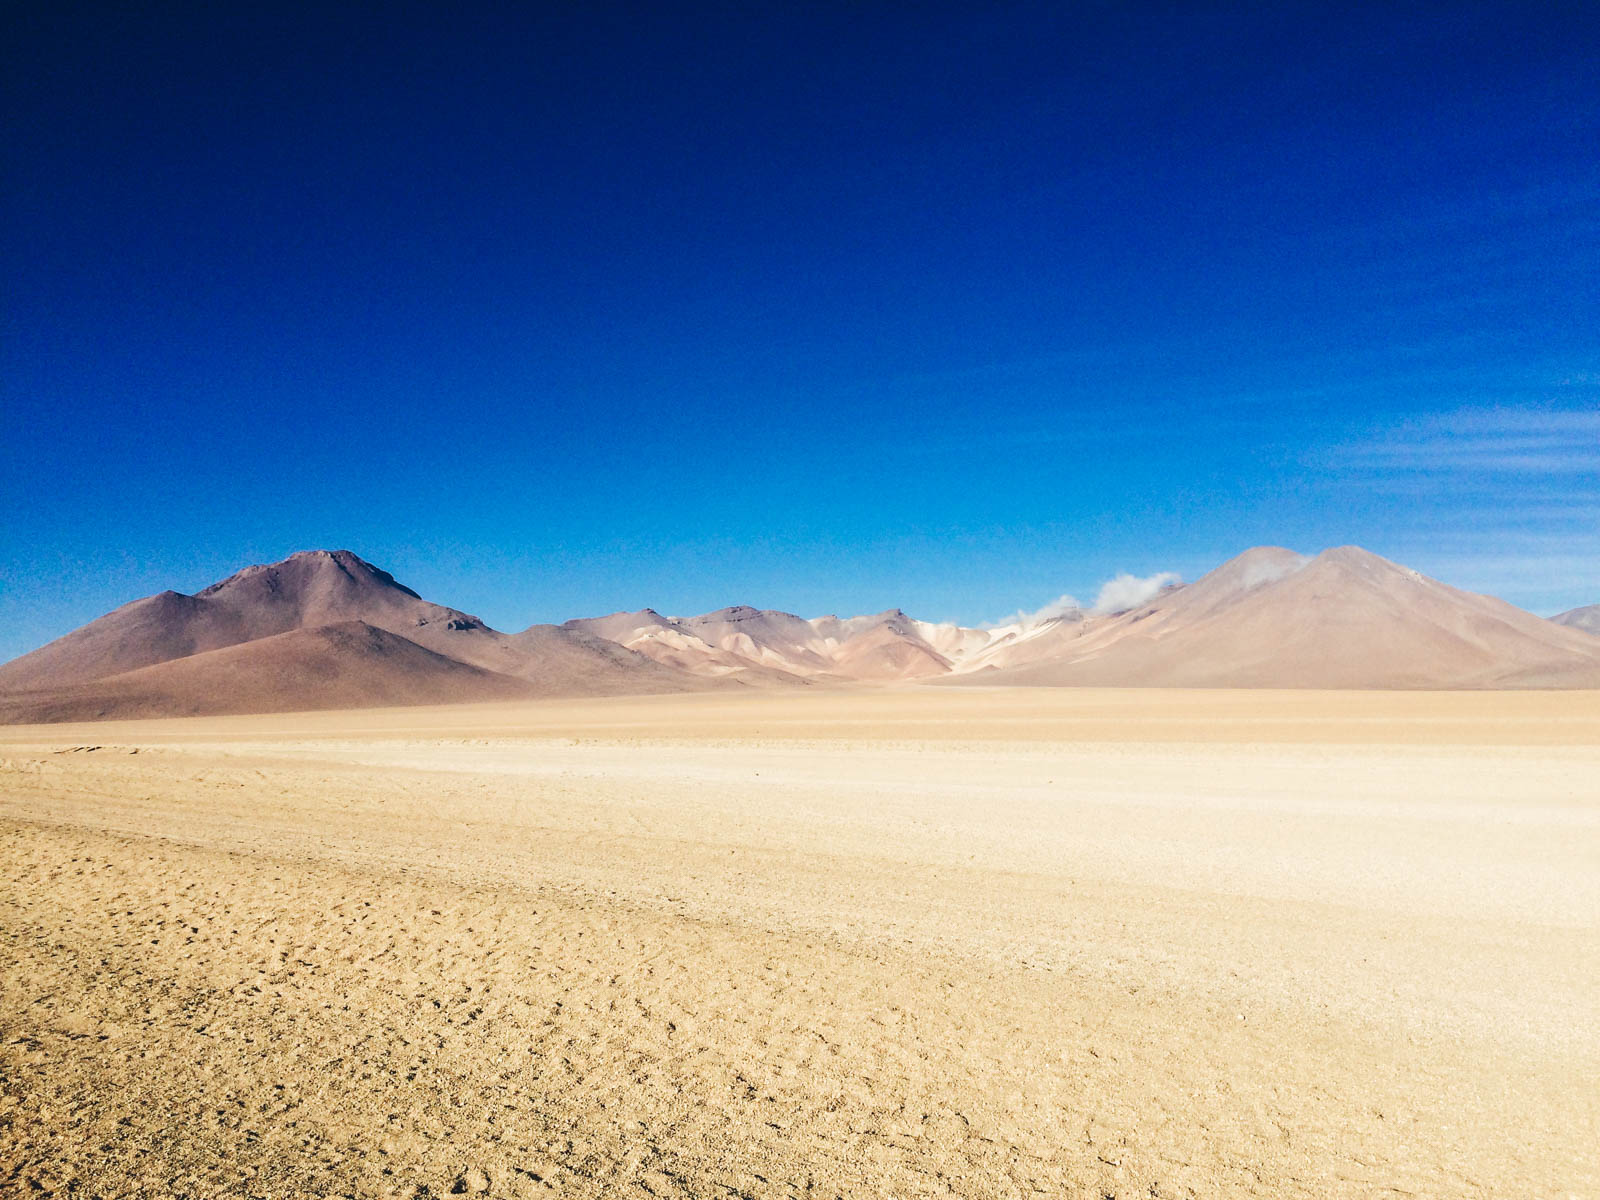 What to expect backpacking Uyuni with advice and tips. The endless desert expanse with mountains in the background